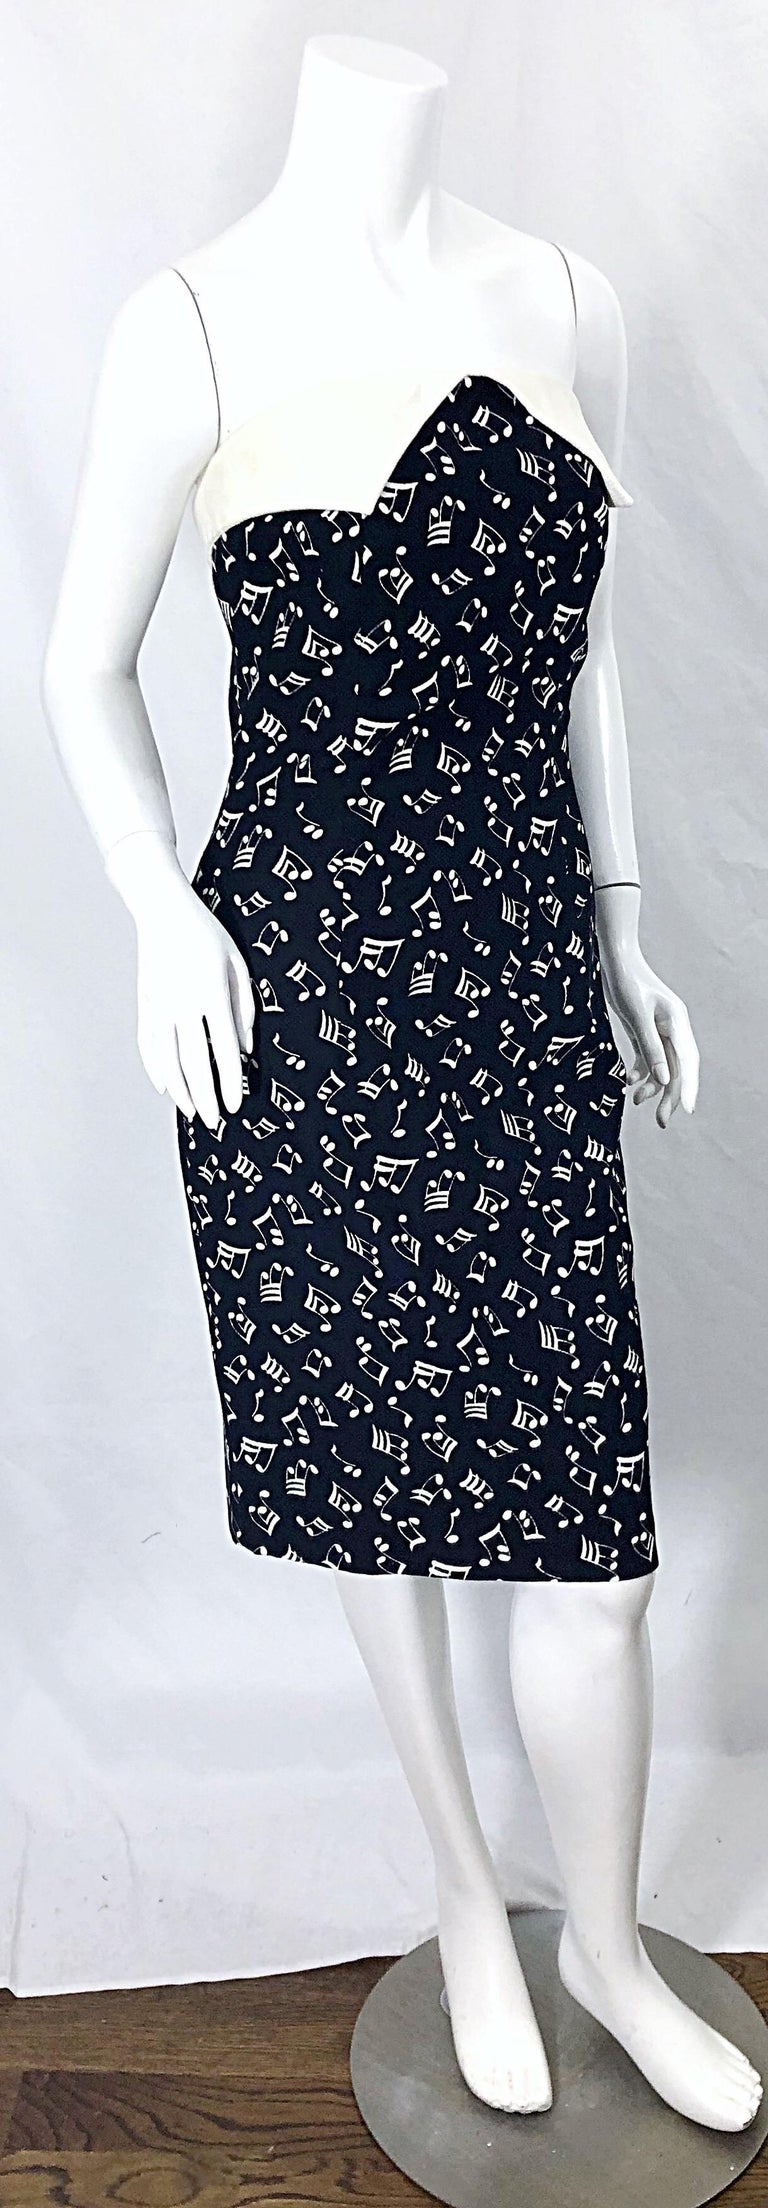 1980s Patrick Kelly Size 10 Novelty Music Print Black and White Strapless Dress For Sale 9